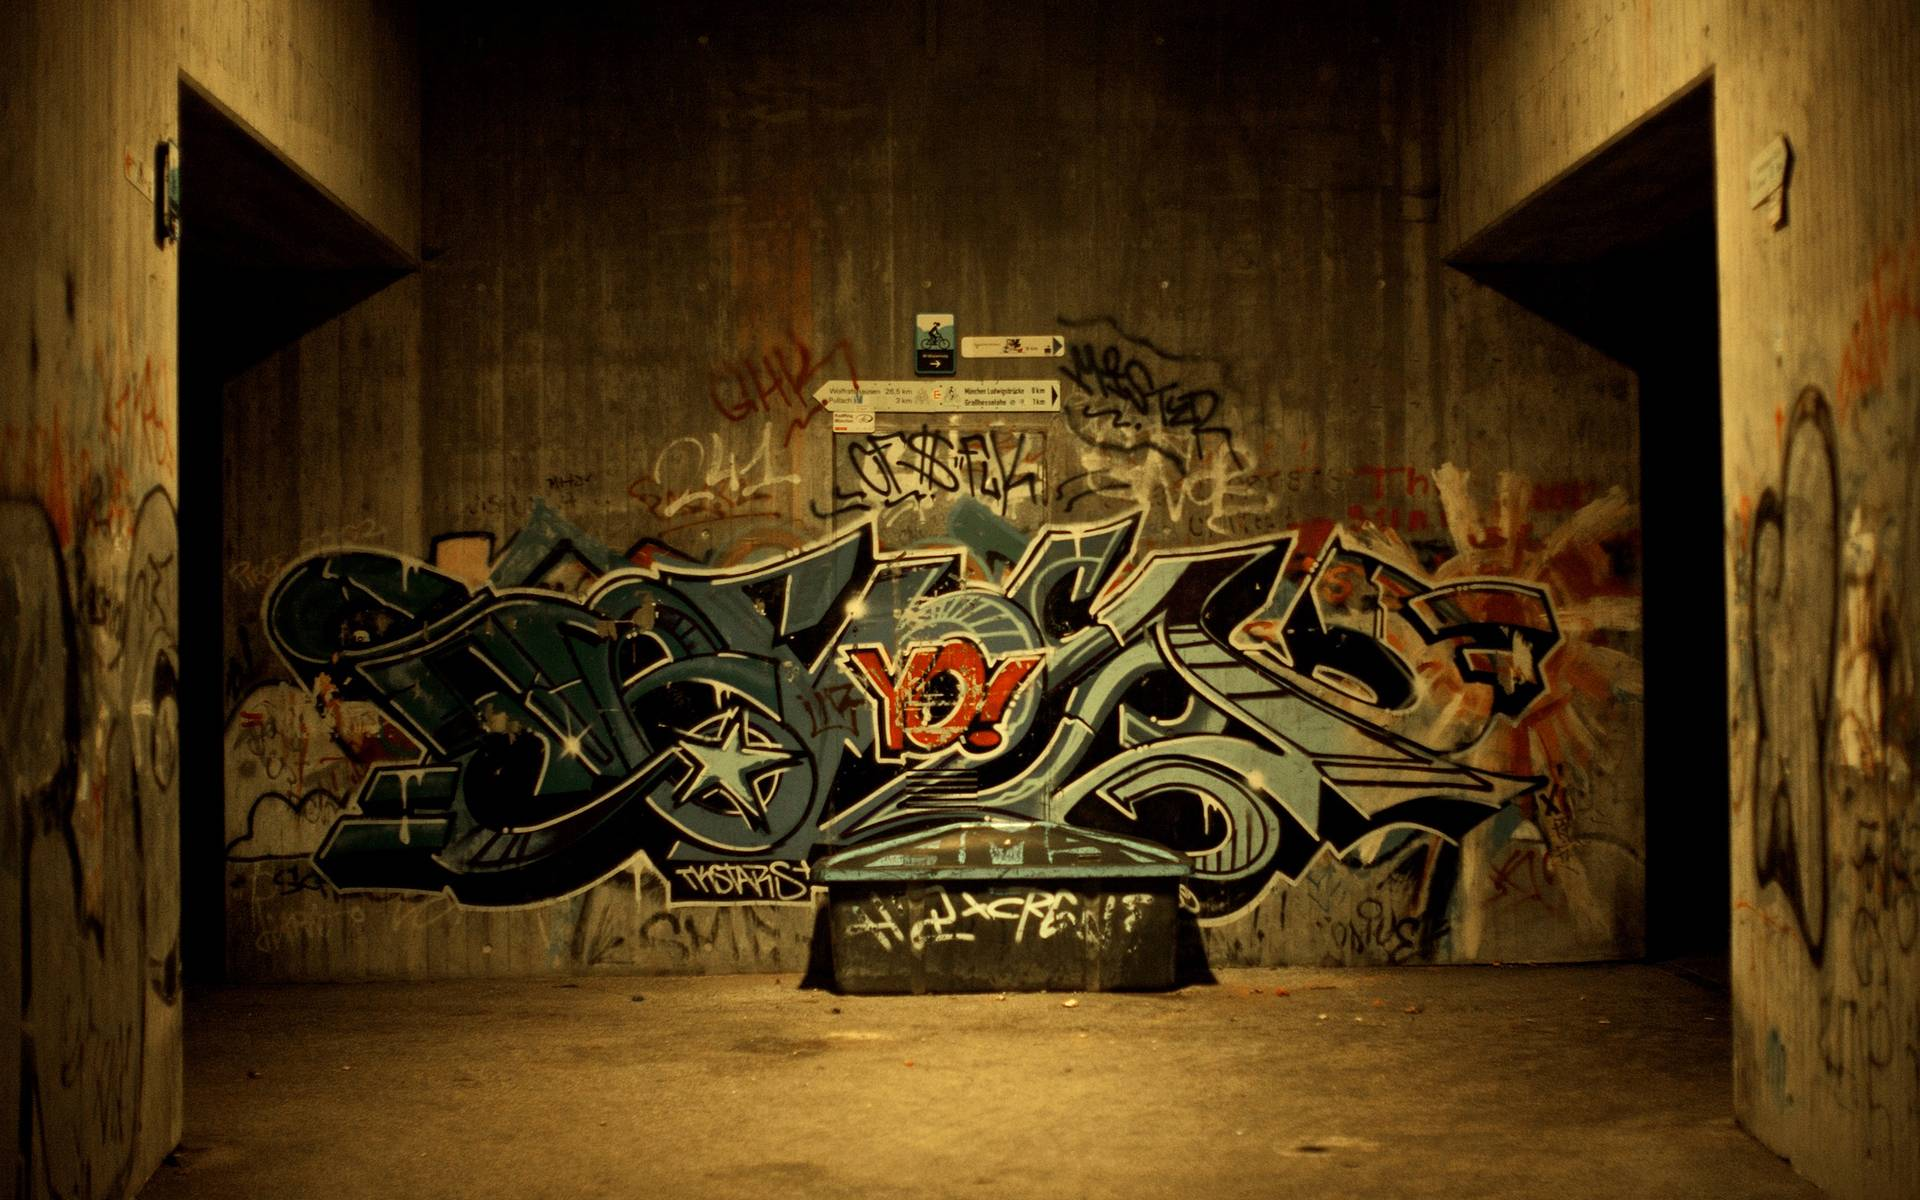 pictures of graffiti art